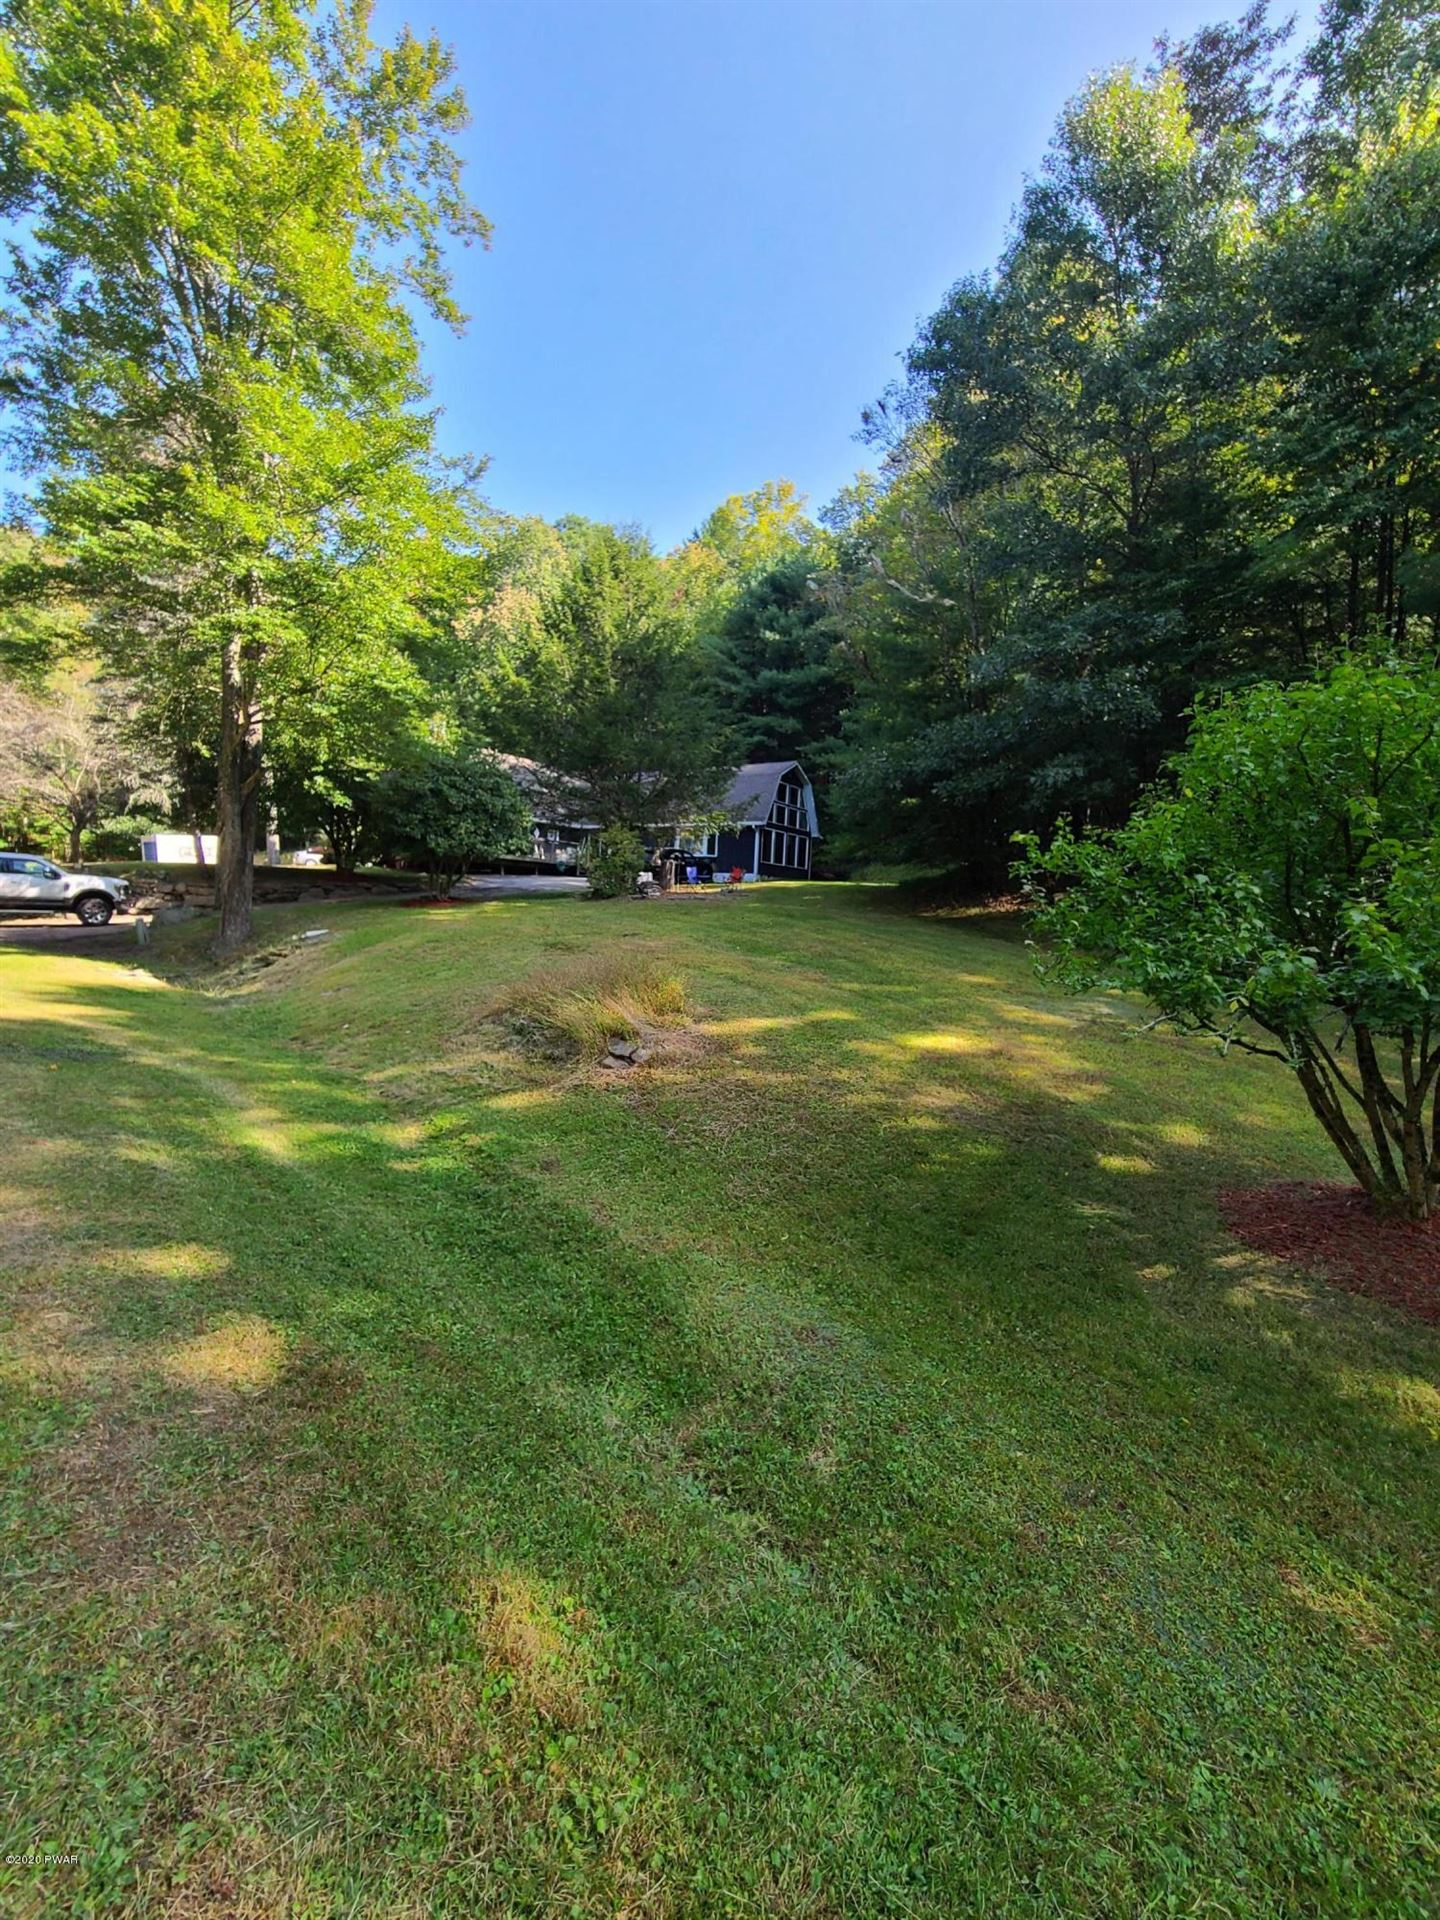 Photo of 20 Chuck Foster Dr, Hawley, PA 18428 (MLS # 20-3869)